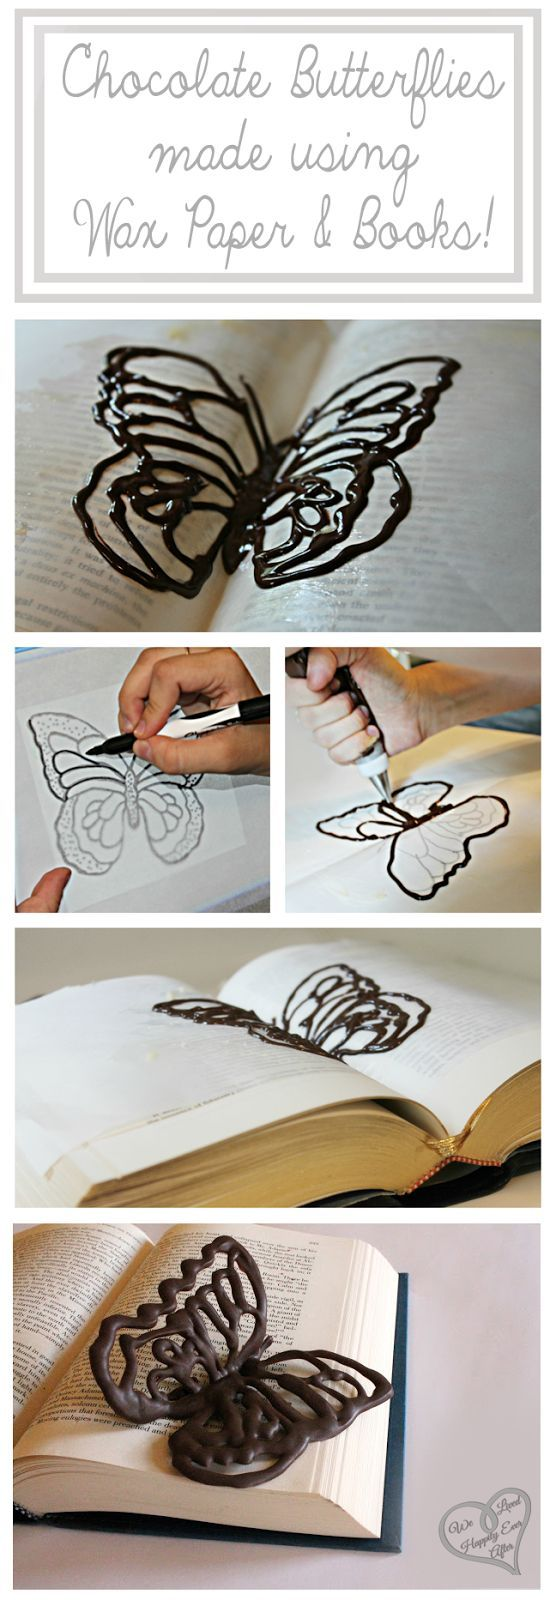 Chocolate Butterflies Using Wax Paper and Books! {Pattern Included}